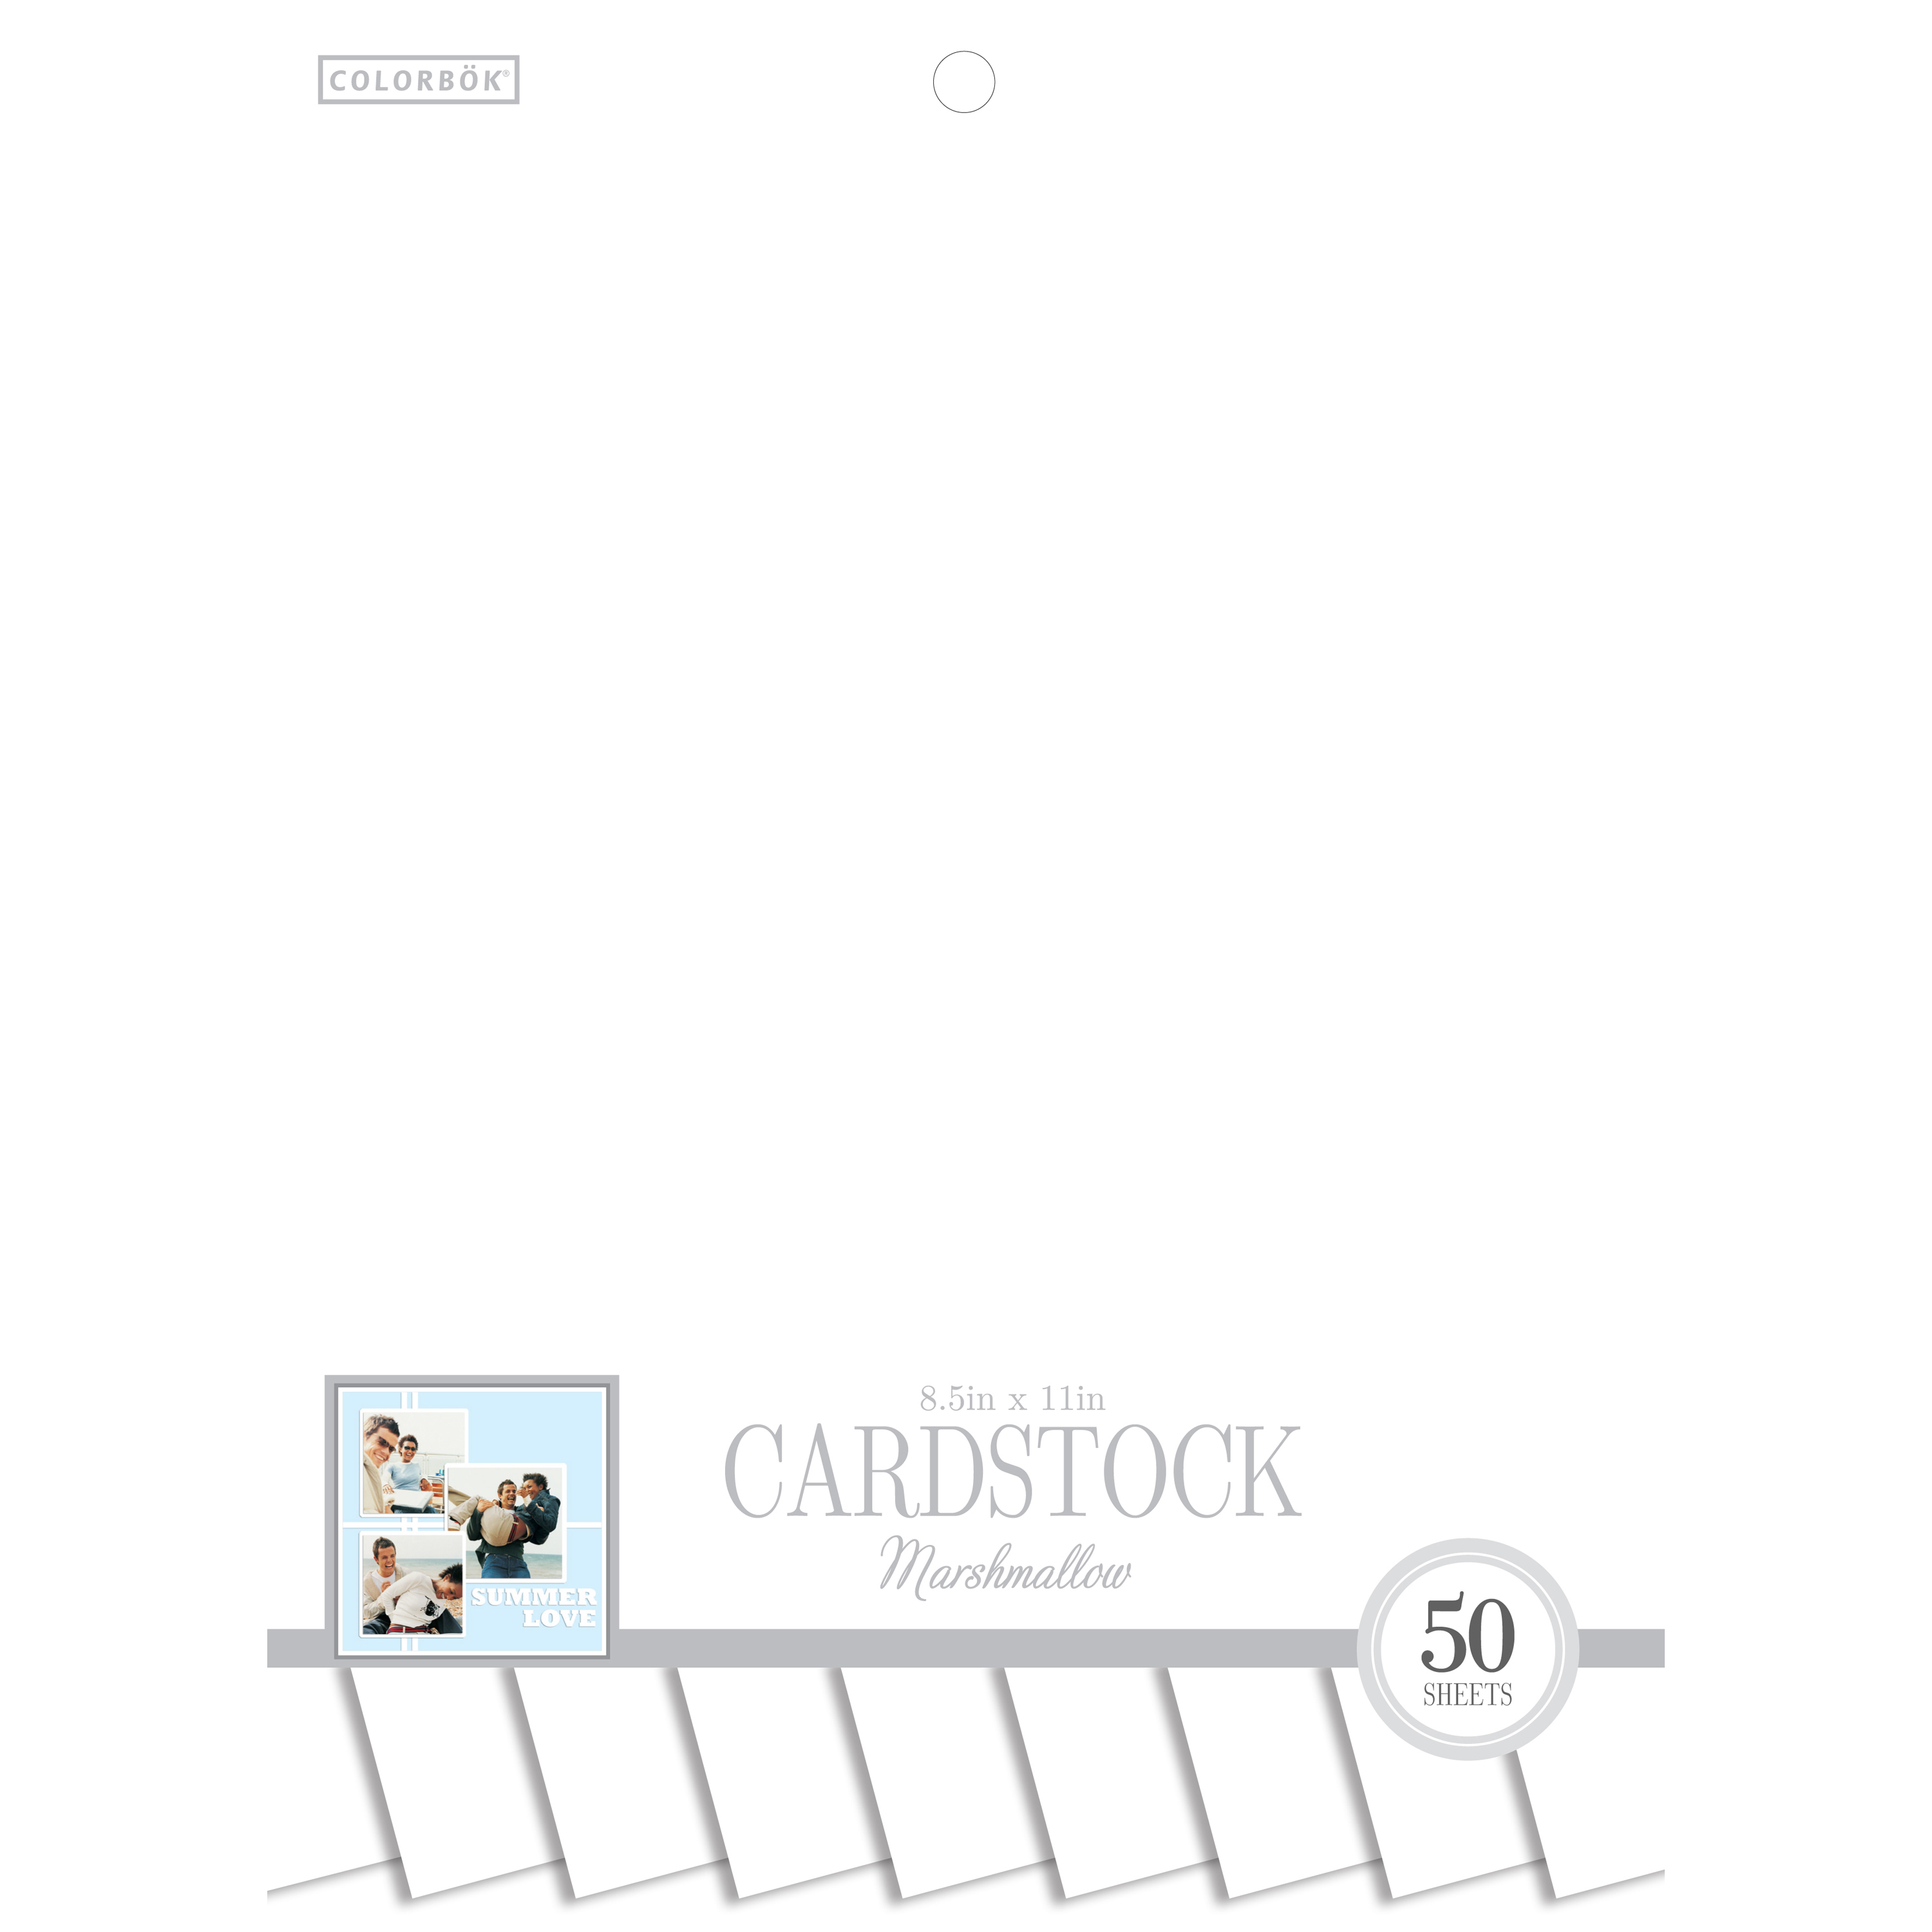 """Colorbok 8.5"""" Smith Cardstock Pad, Marshmallow"""